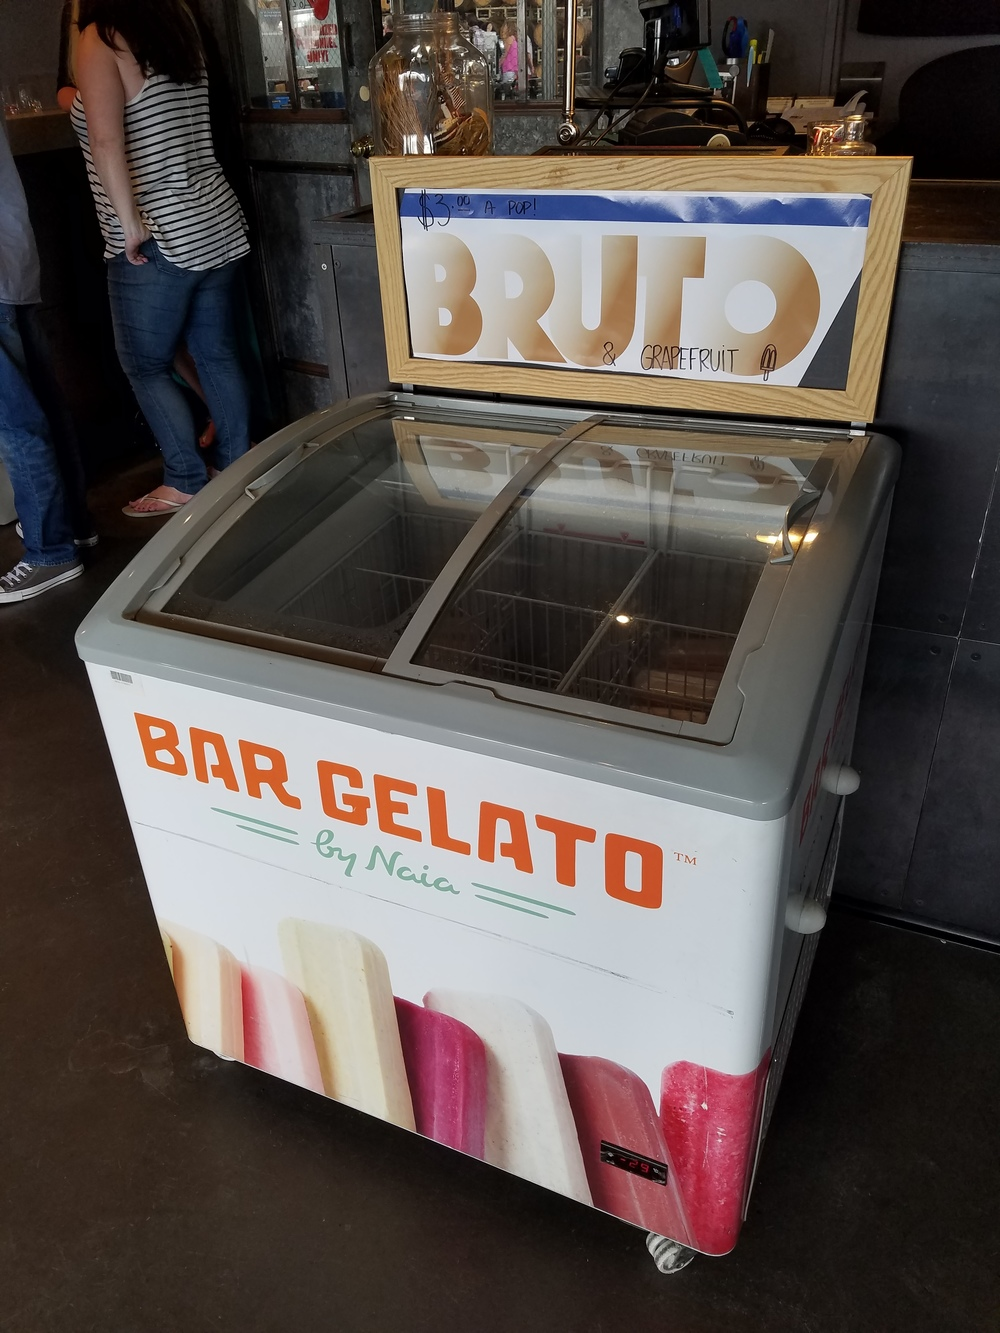 They also created Bruto Americano and grapefruit popsicles! Quite good... but taste like grapefruit for the most part.